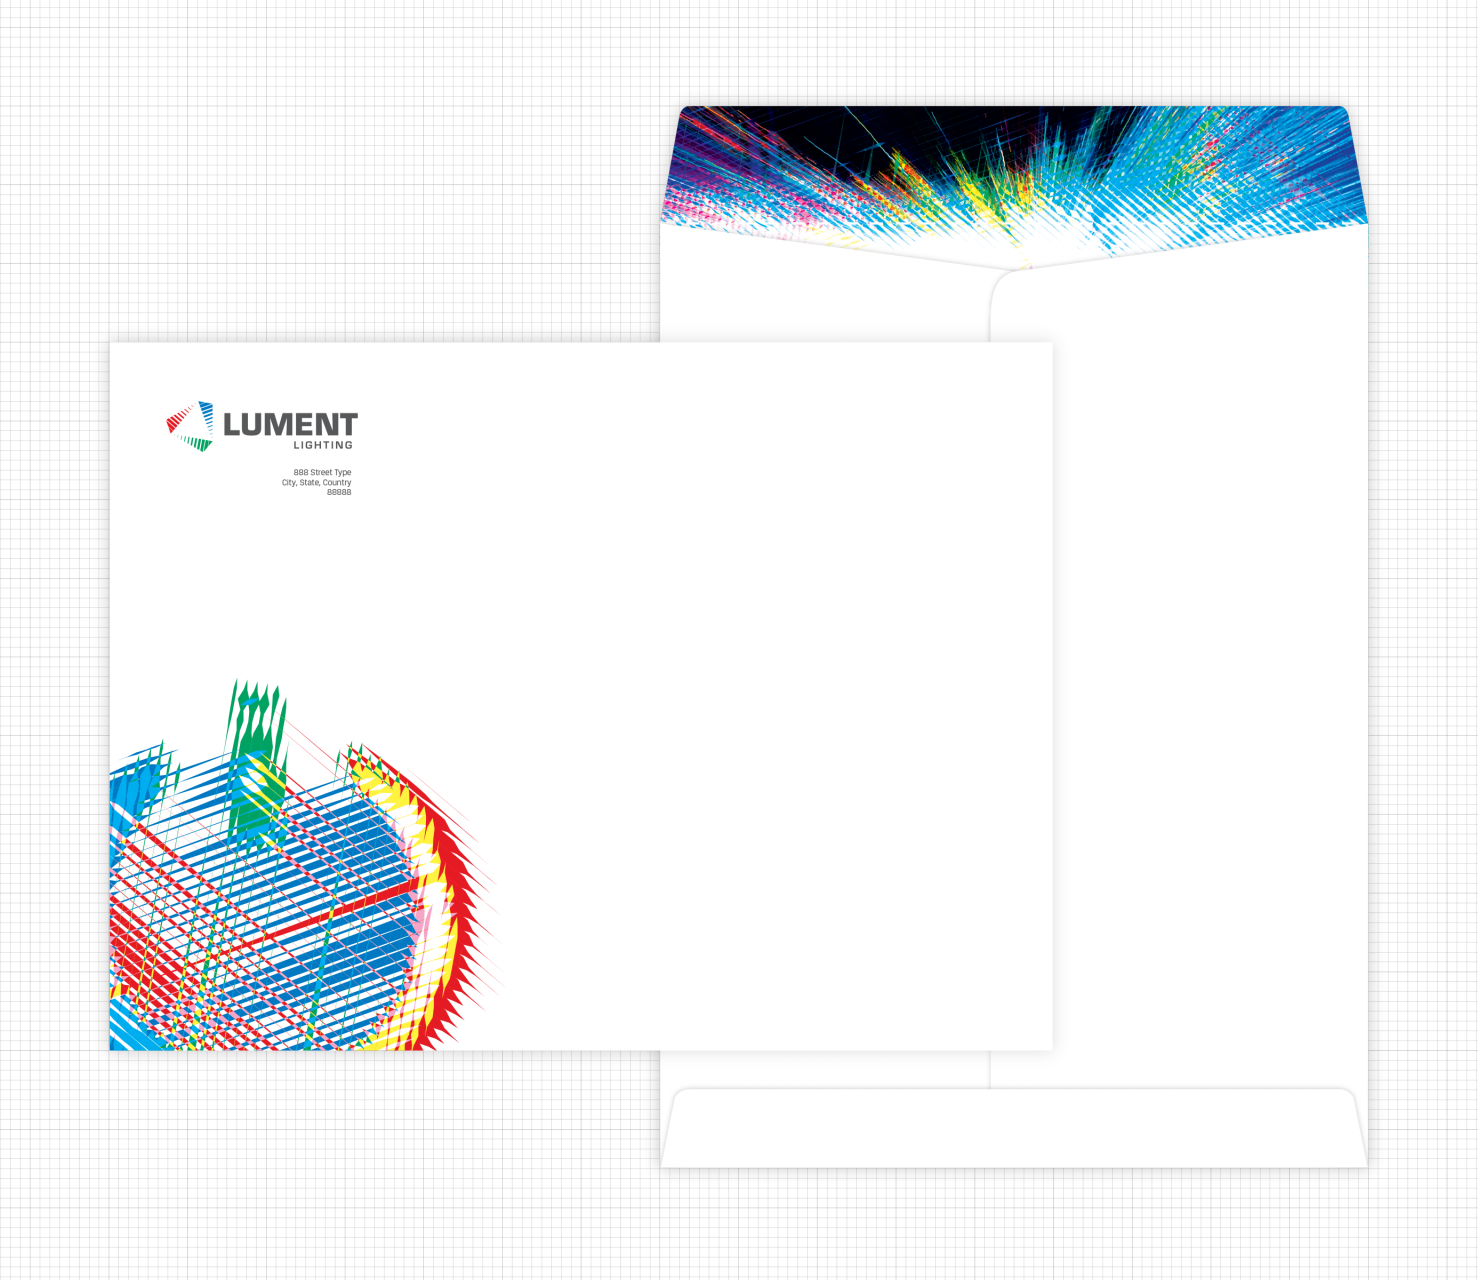 Image of Lument Lighting catalogue envelope